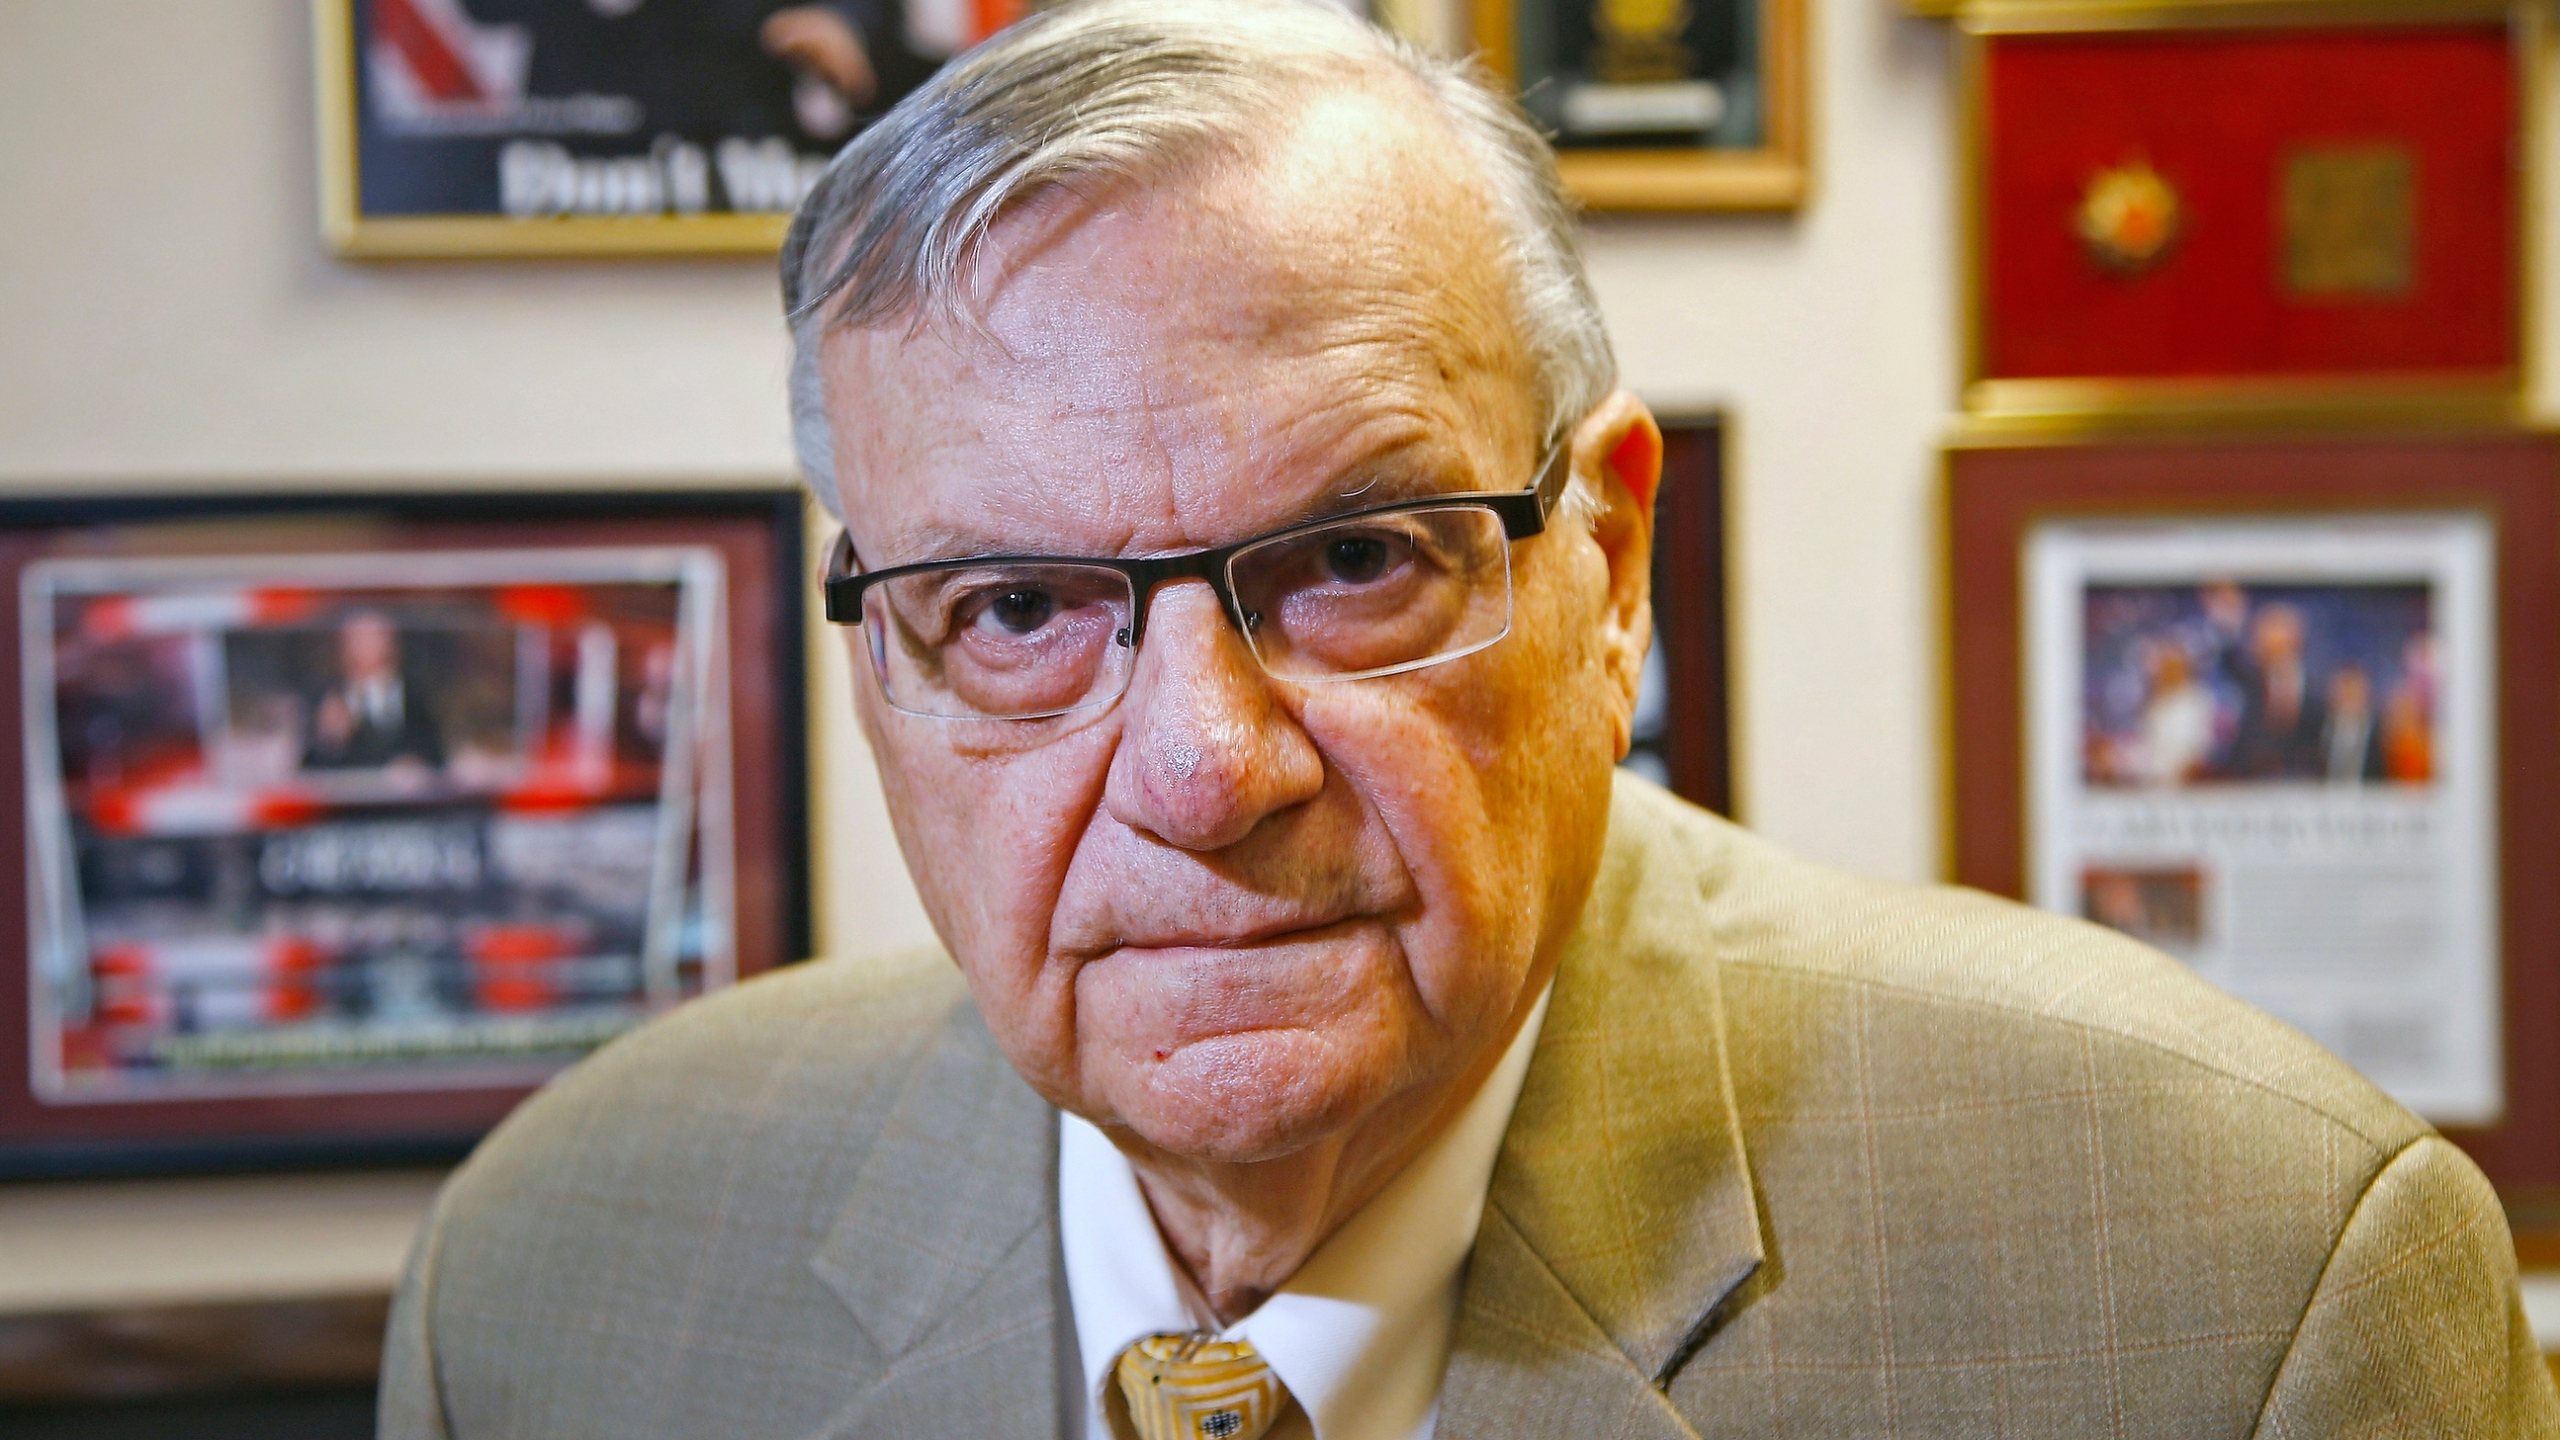 In this Aug. 26, 2019, file photo, former Maricopa County Sheriff Joe Arpaio poses for a portrait at his private office in Fountain Hills, Arizona. The taxpayer costs for the racial profiling lawsuit stemming from the immigration patrols launched a decade ago by Arpaio are expected to reach $202 million by the summer of 2022. Officials approved a tentative county budget Monday, May 17, 2021, that provides $31 million for compliance costs in the fiscal year that begins on July 1. No one in county government can say exactly when those costs will start to decline or end. (AP Photo/Ross D. Franklin, File)